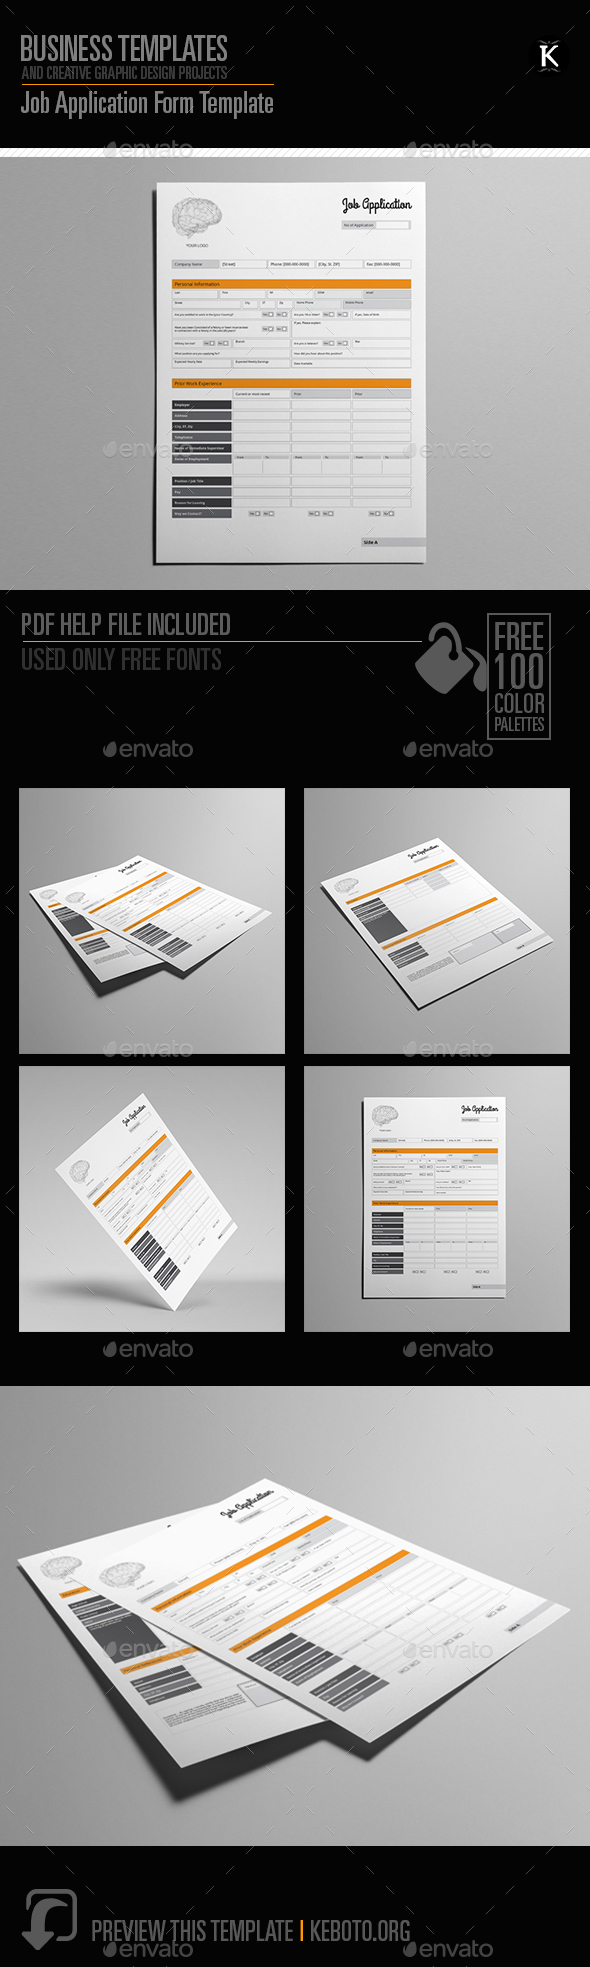 Job Application Form Template by Keboto | GraphicRiver